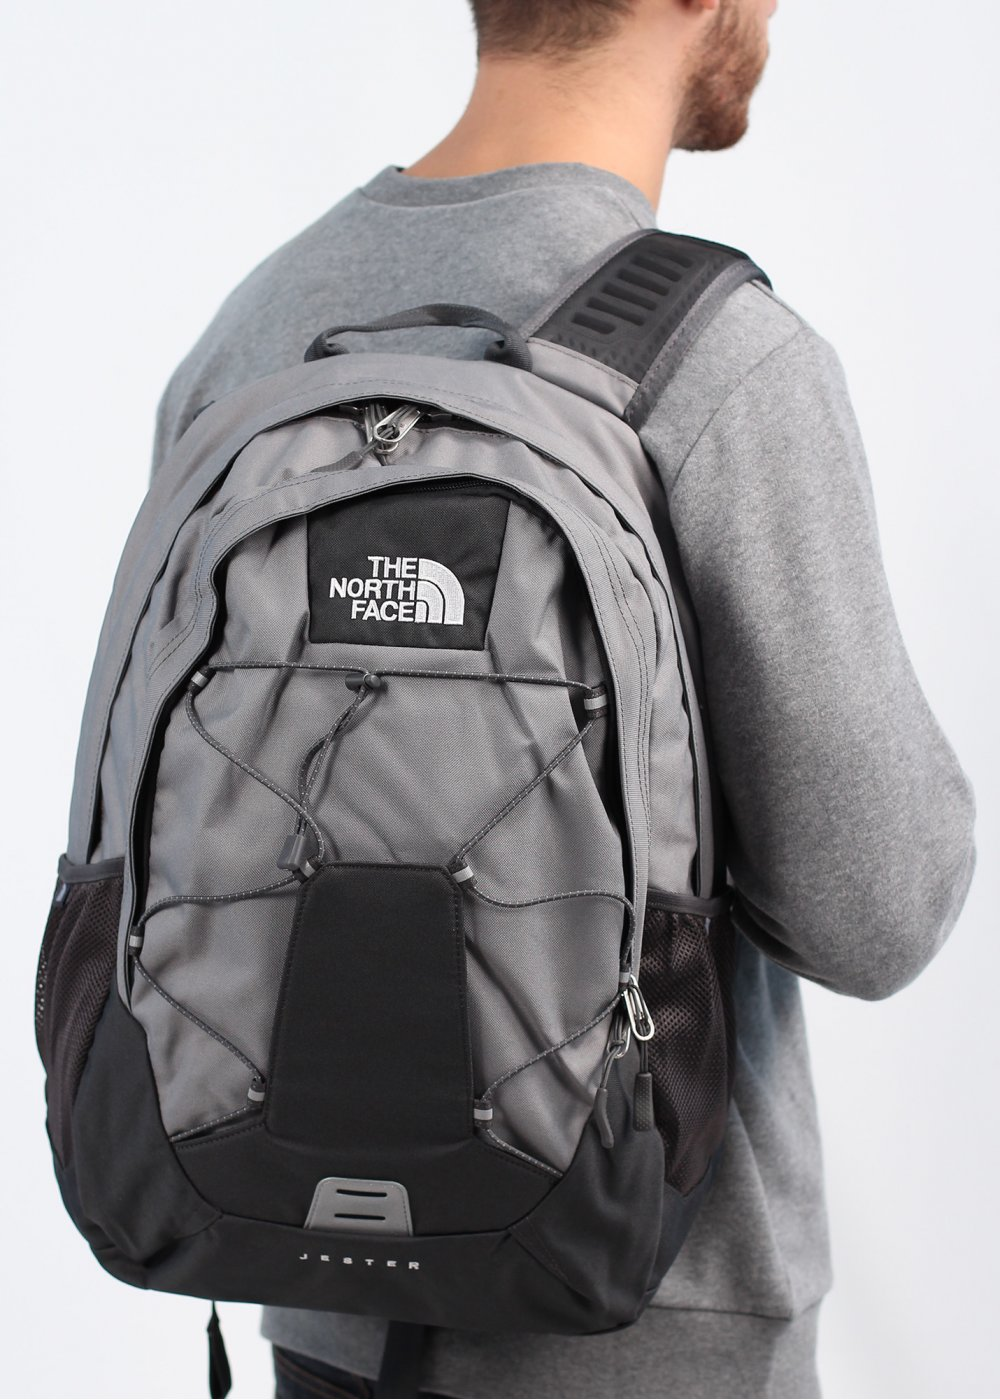 845ff088c The North Face Jester Backpack Bag - Grey